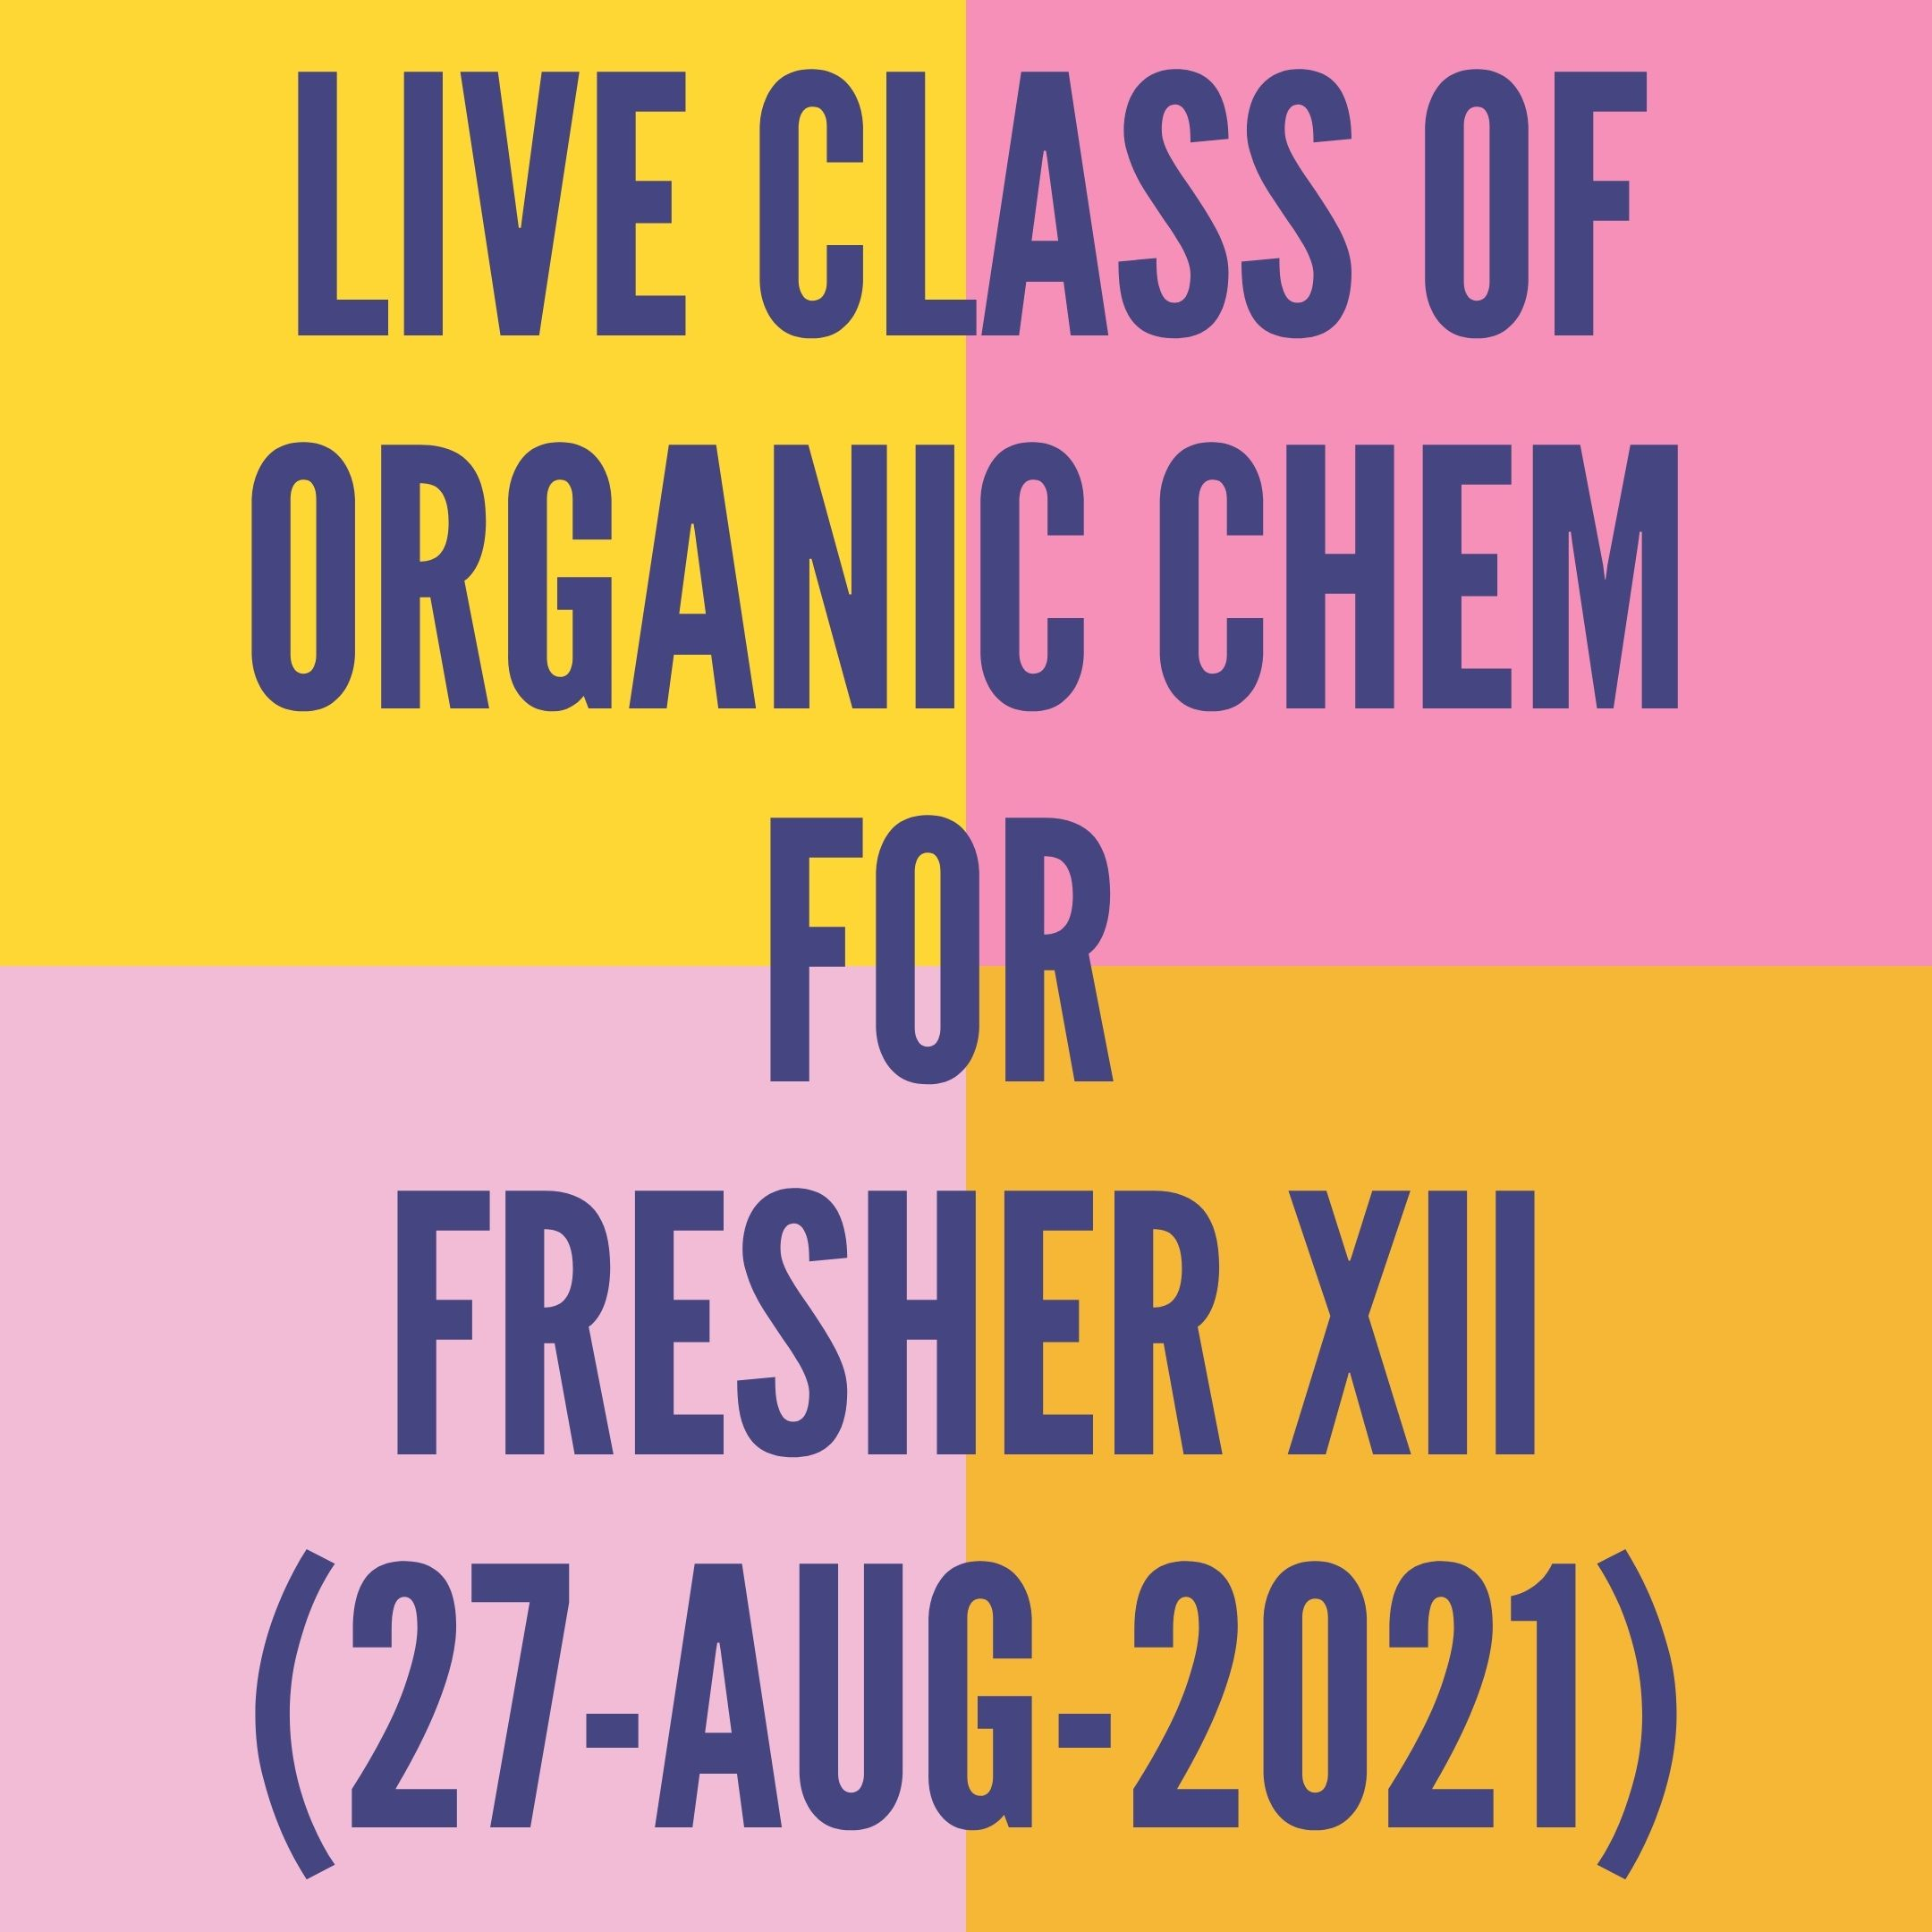 LIVE CLASS OF ORGANIC CHEMISTRY FOR FRESHER XII (27-AUG-2021) ALCOHOL, PHENOL & ETHER